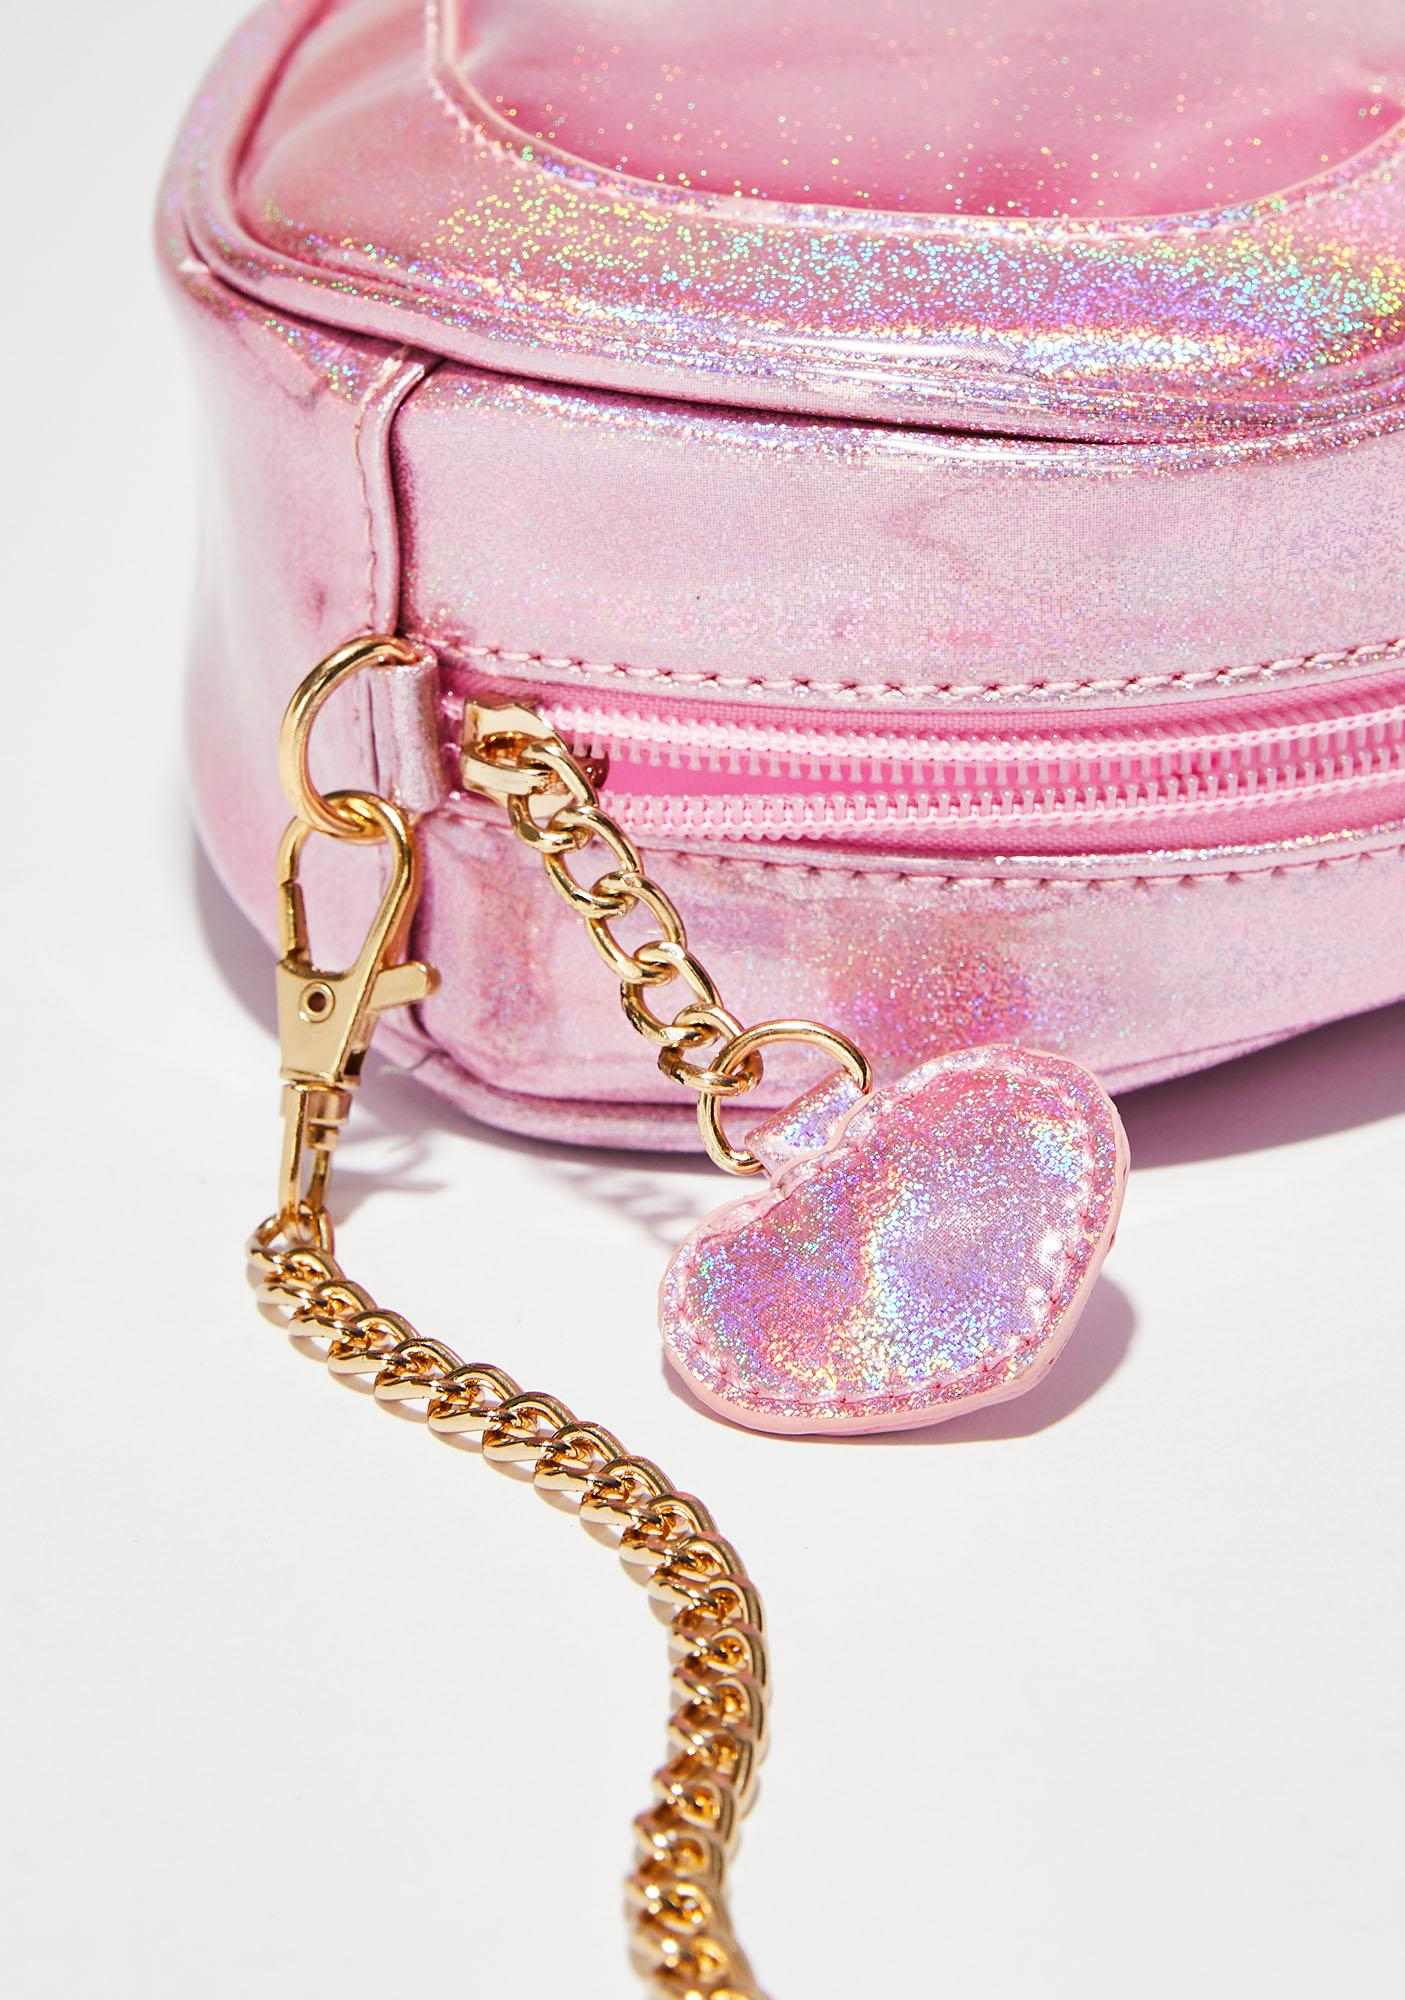 Holo Heart Holographic Bag